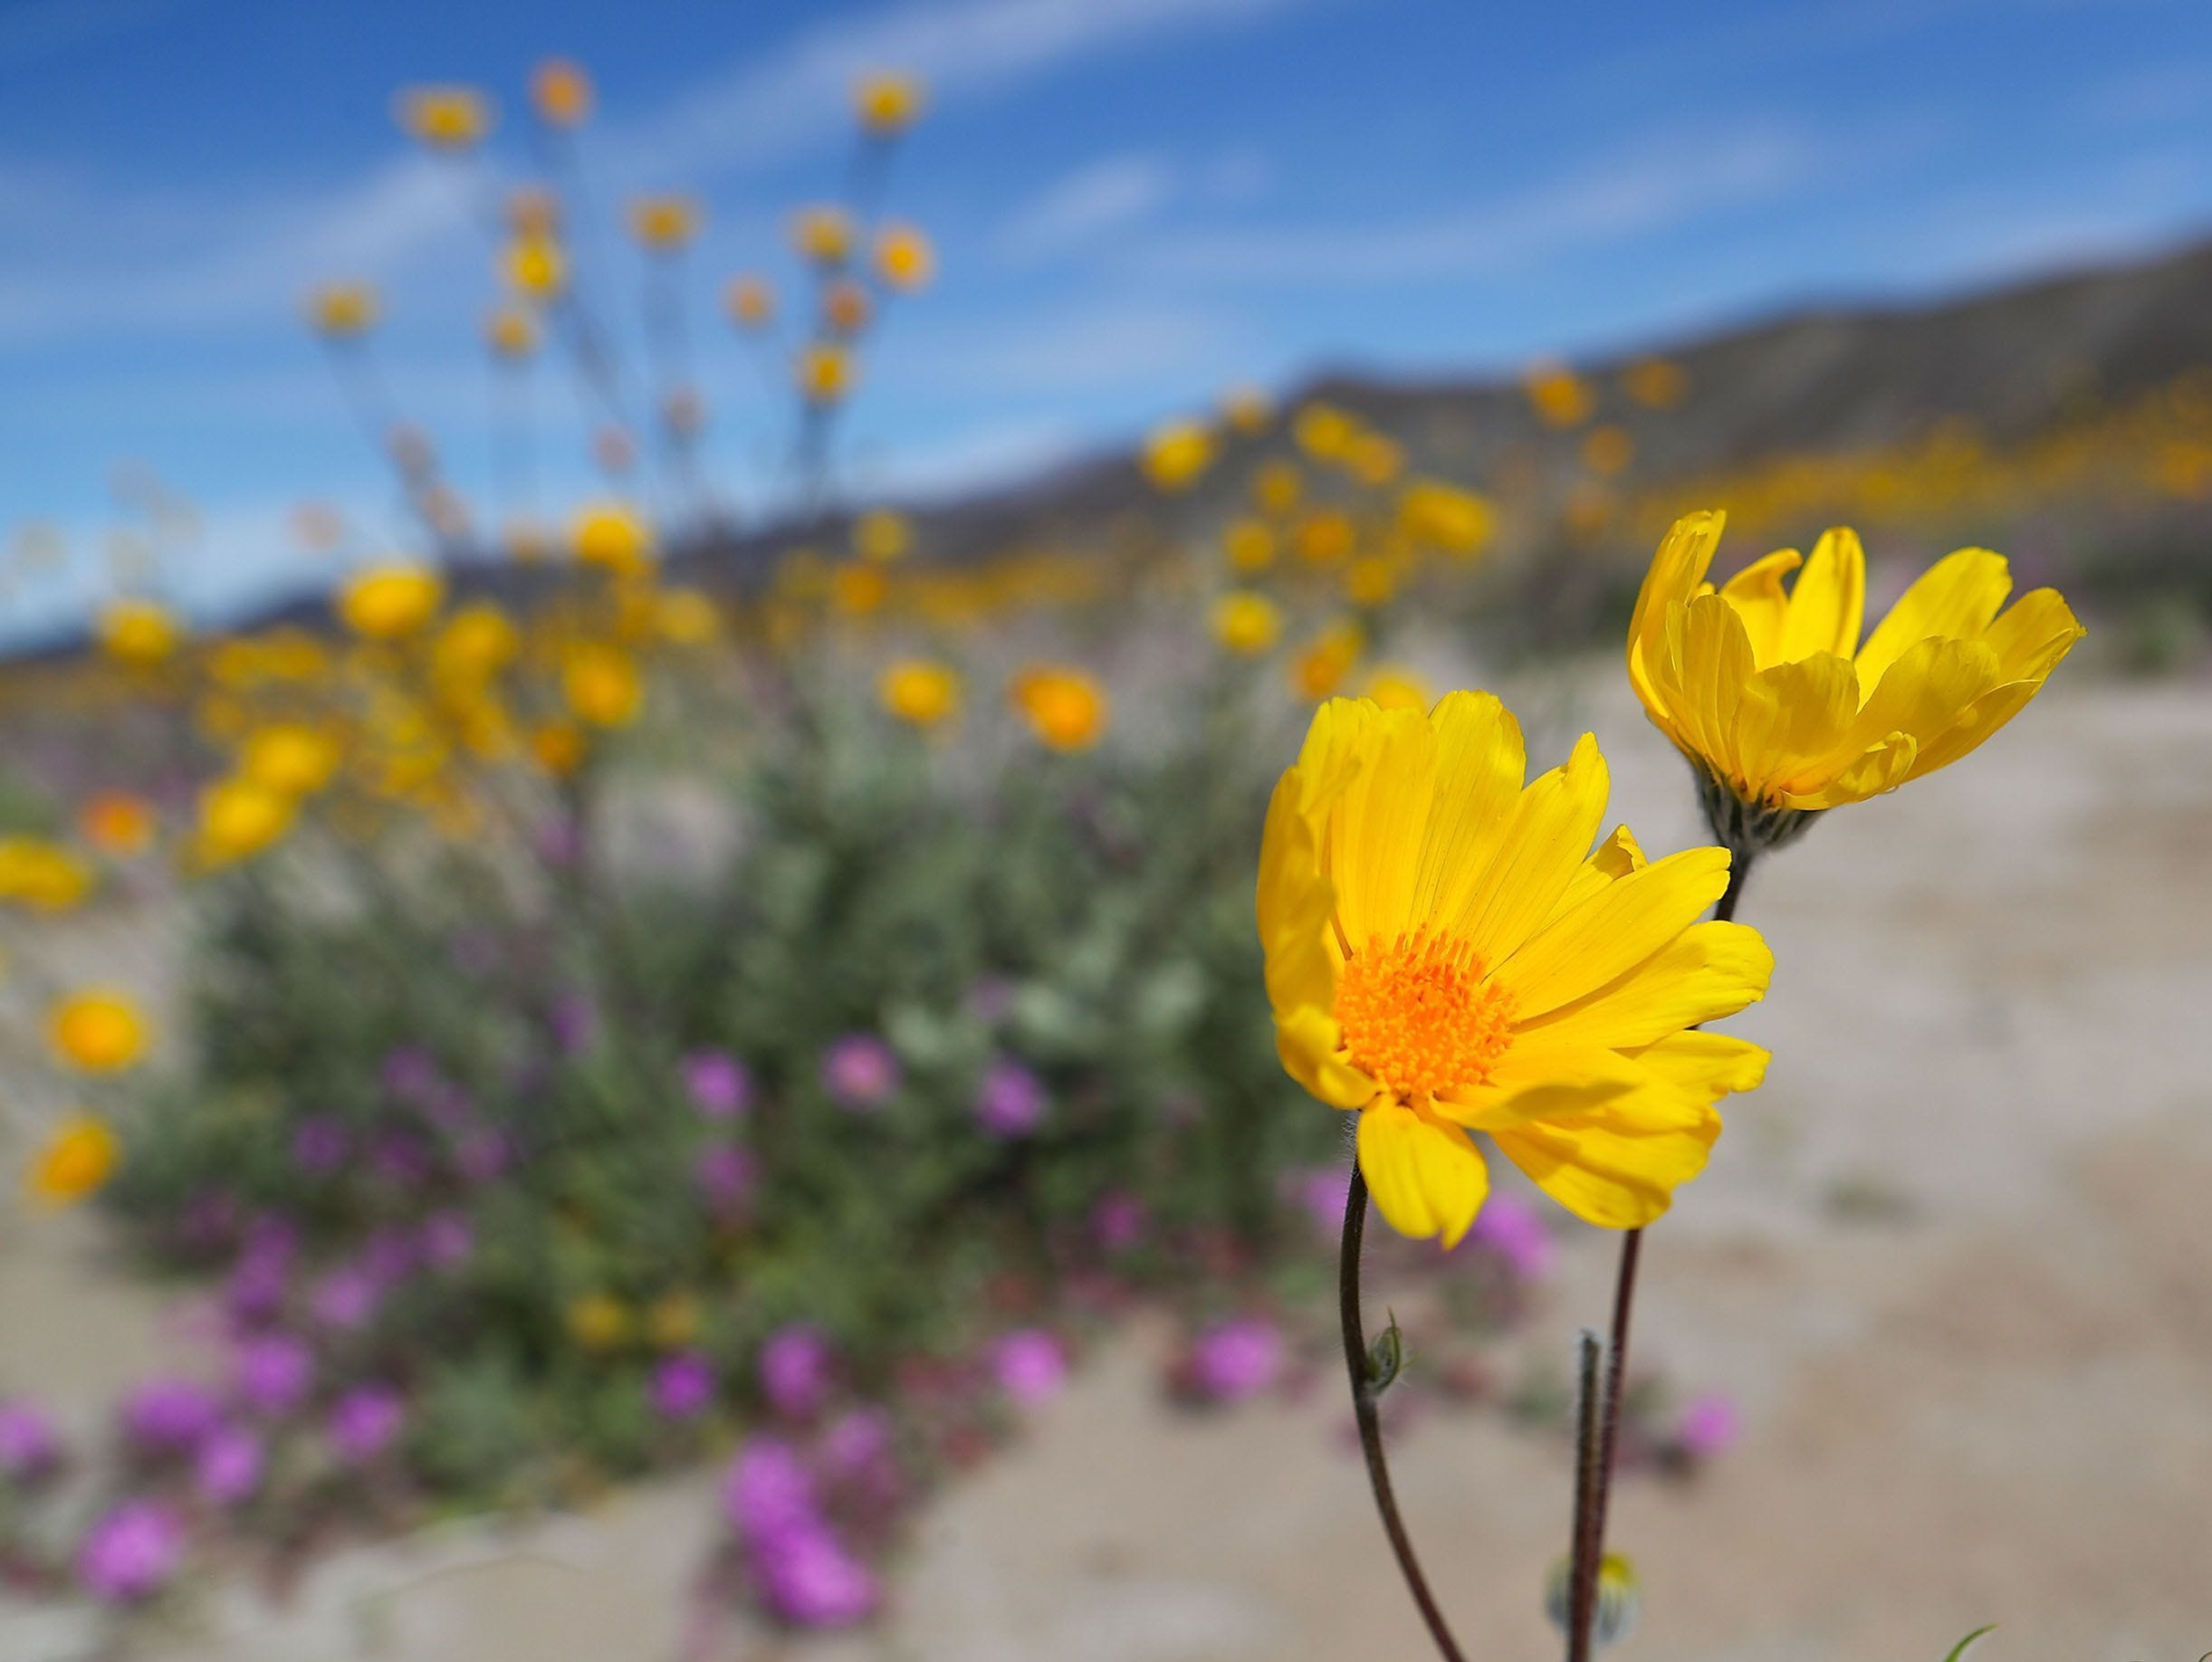 Wildflowers bloom in the Anza Borrego Desert State Park near Borrego Springs, Calif.  March 1, 2019.